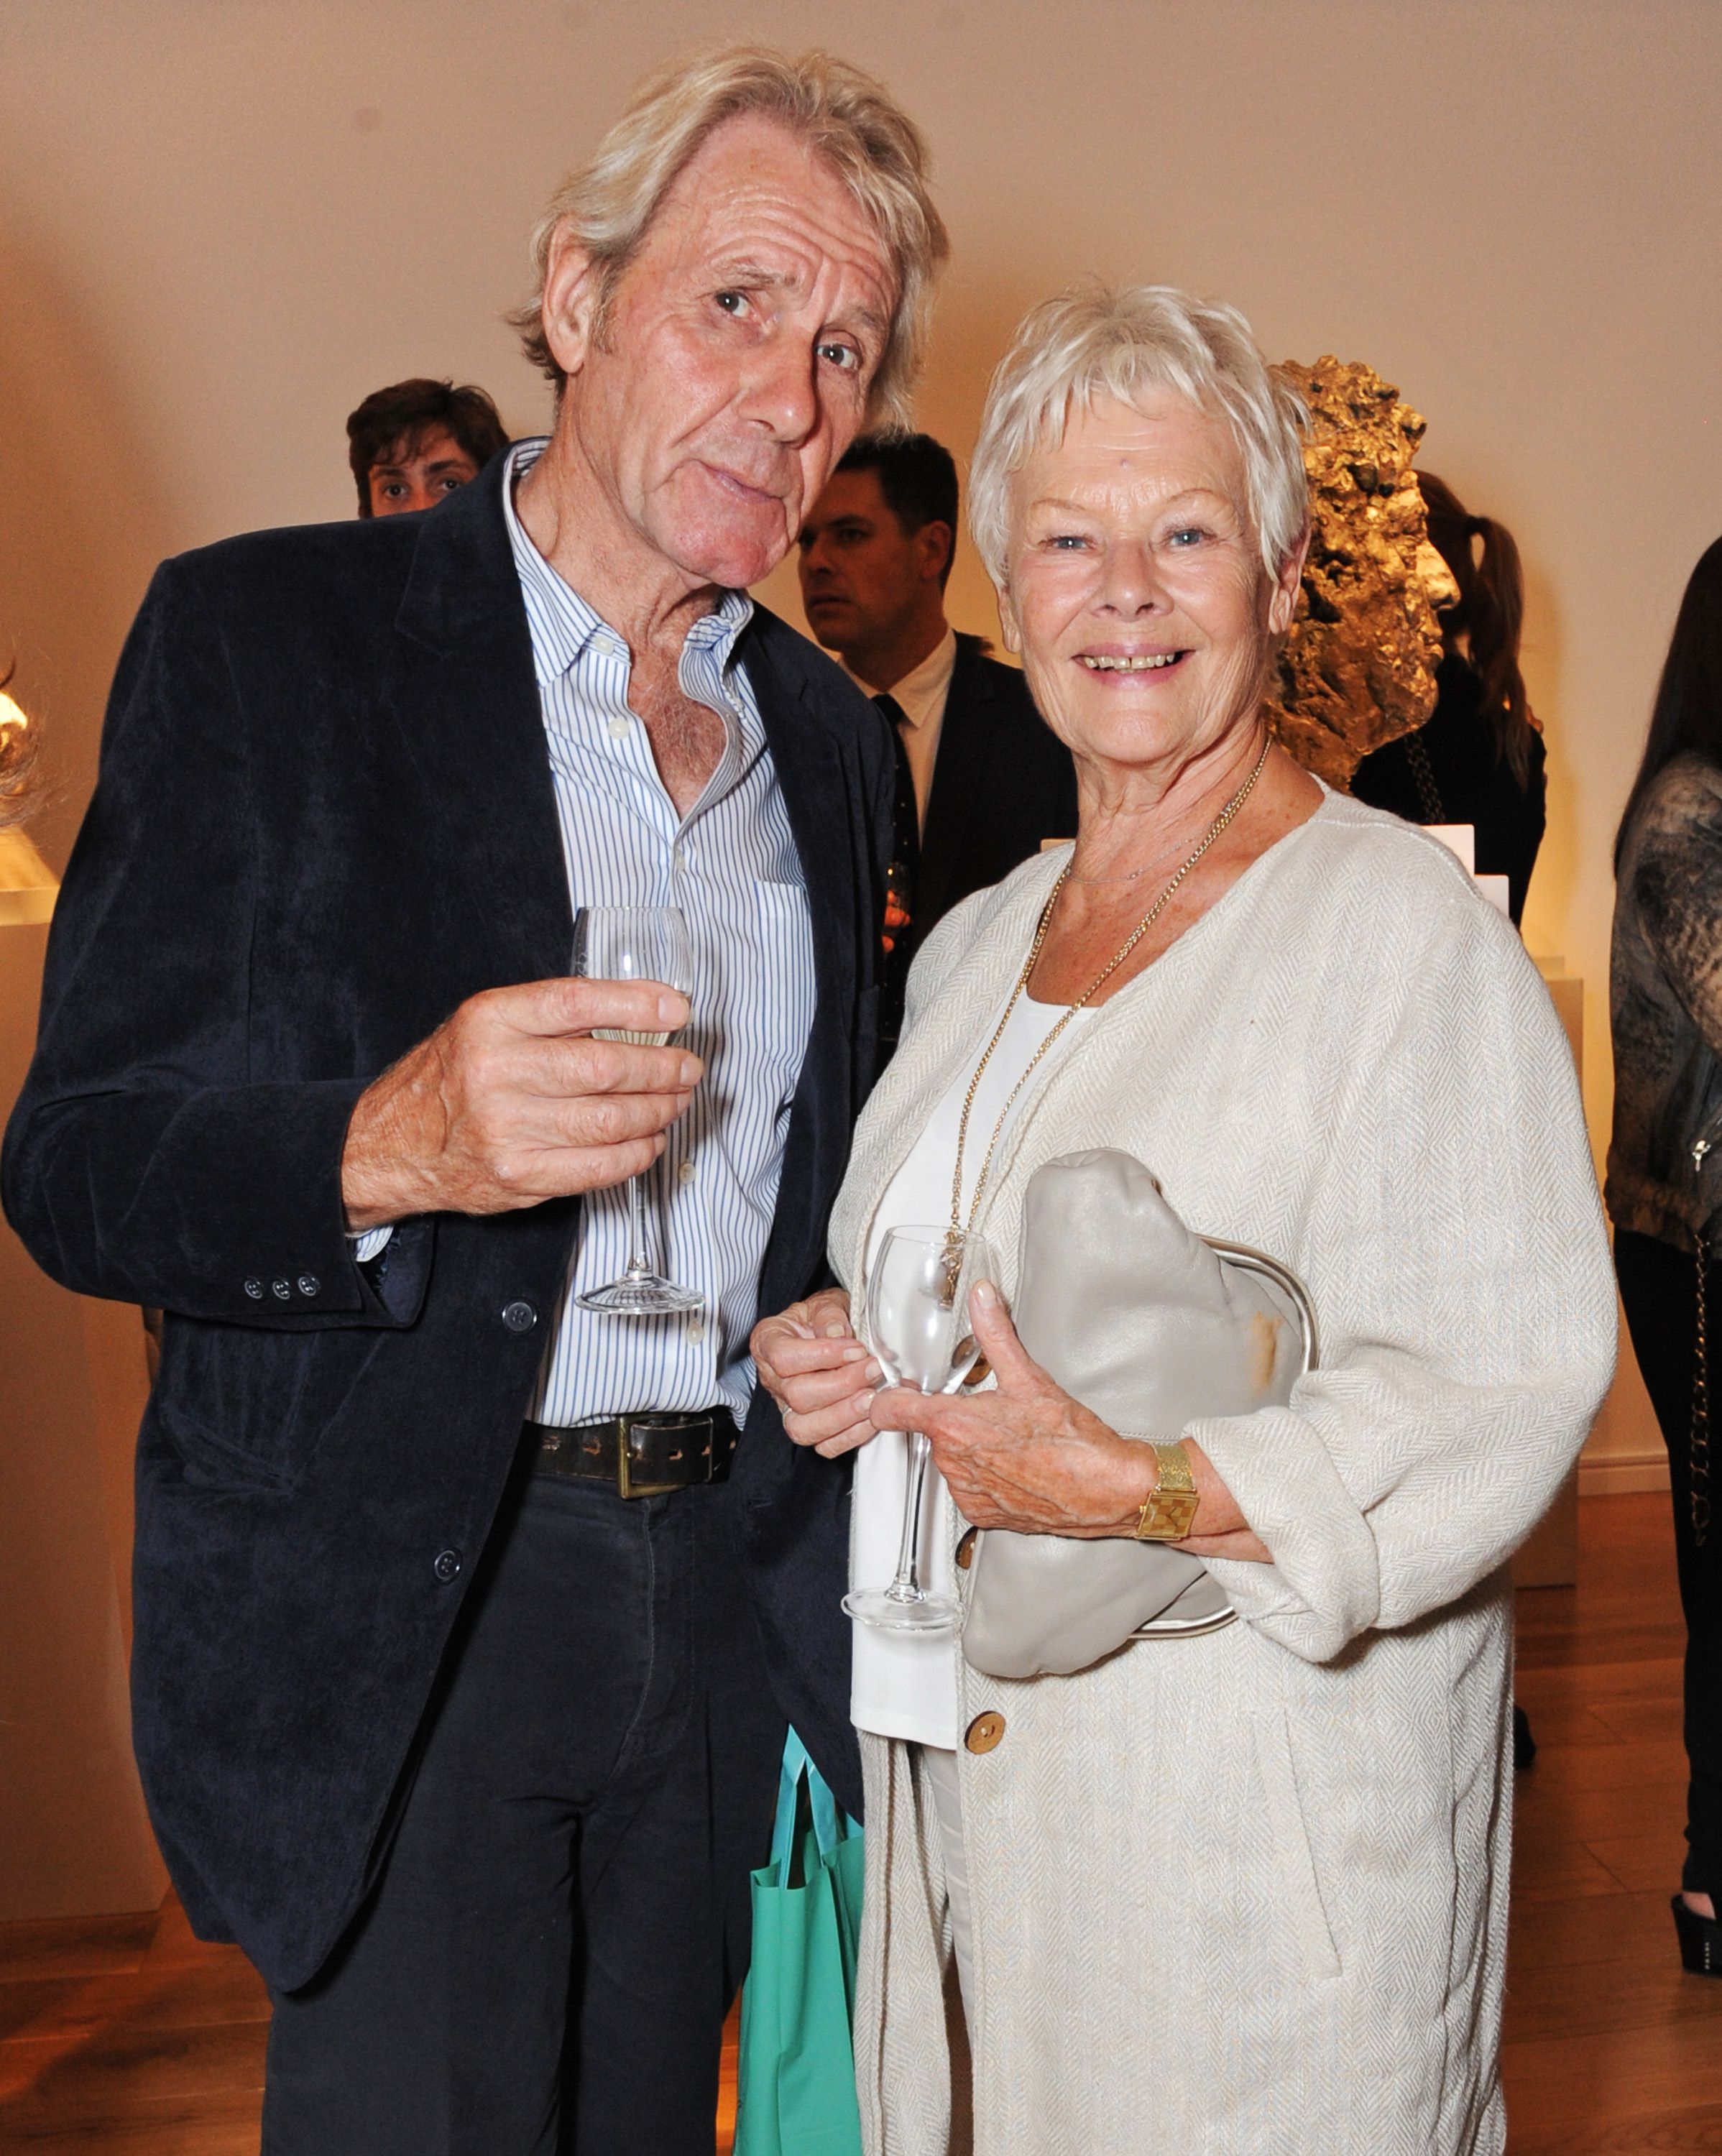 """Dame Judi Dench and David Mills at Nicole Farhi's debut exhibition """"From The Neck Up"""" in 2014 in London, England 